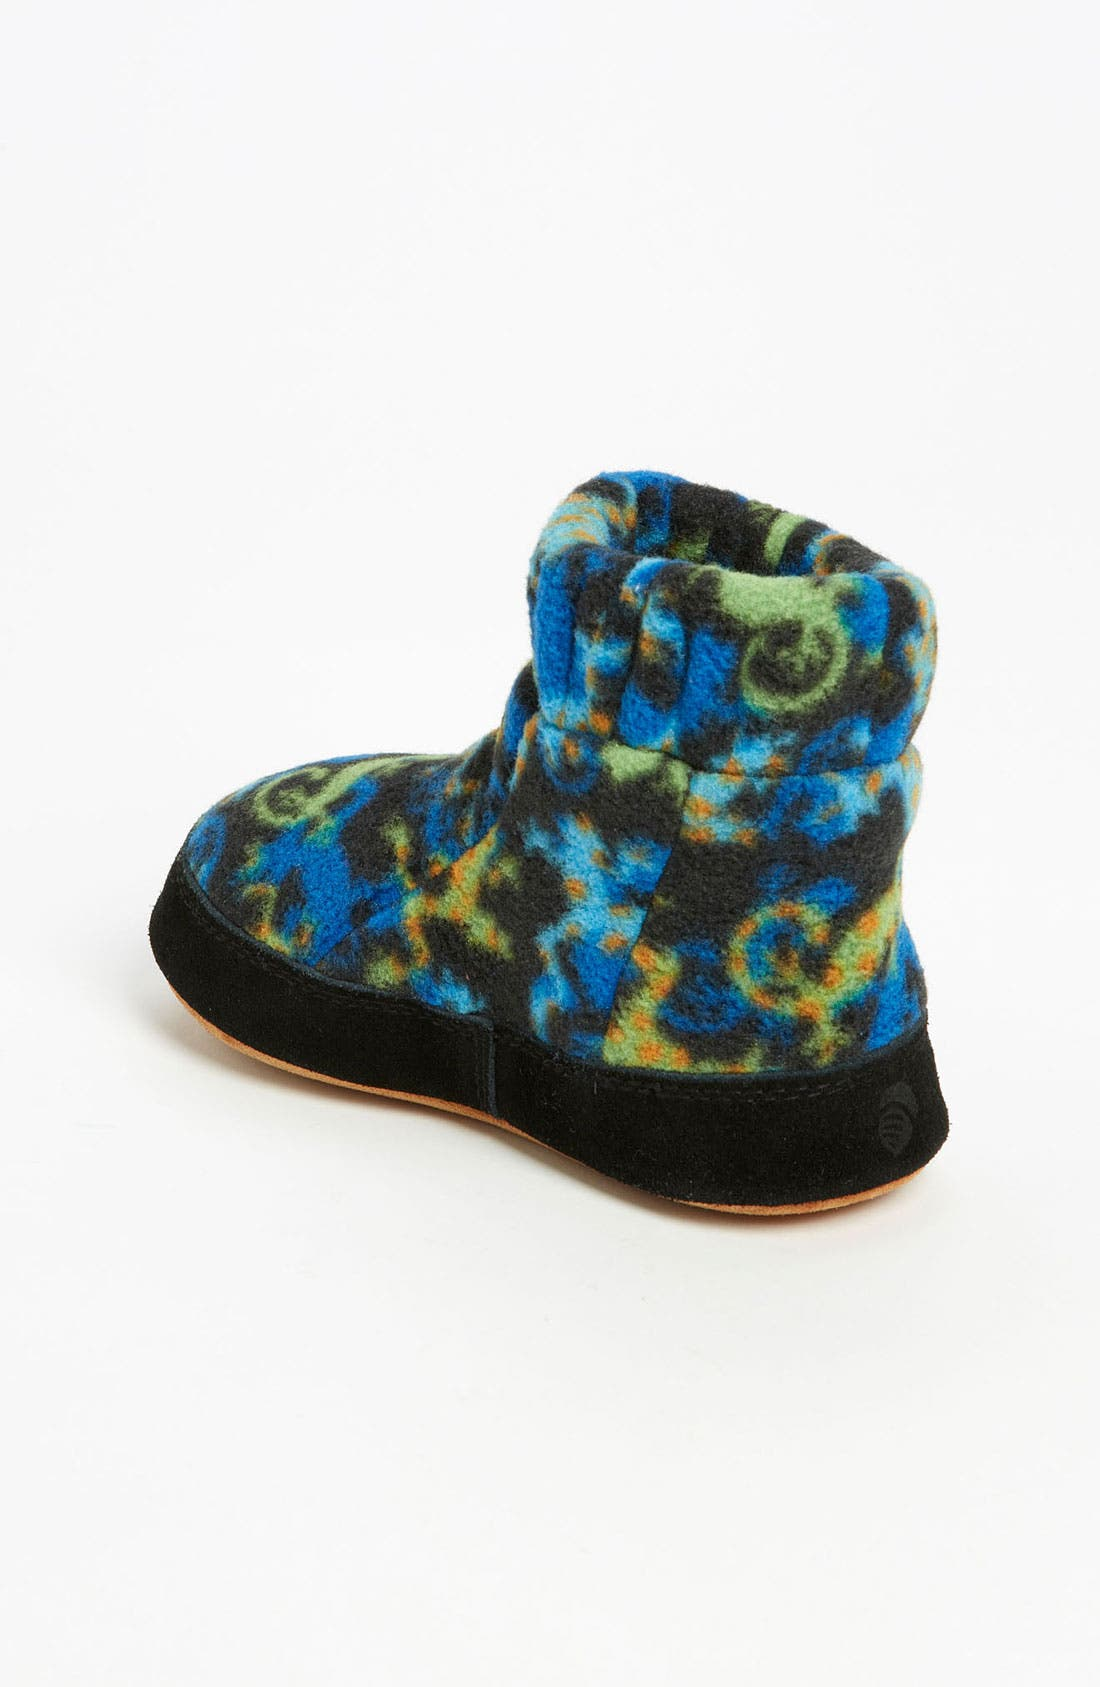 Alternate Image 2  - Acorn 'Kadabra' Bootie Slipper (Toddler, Little Kid & Big Kid)